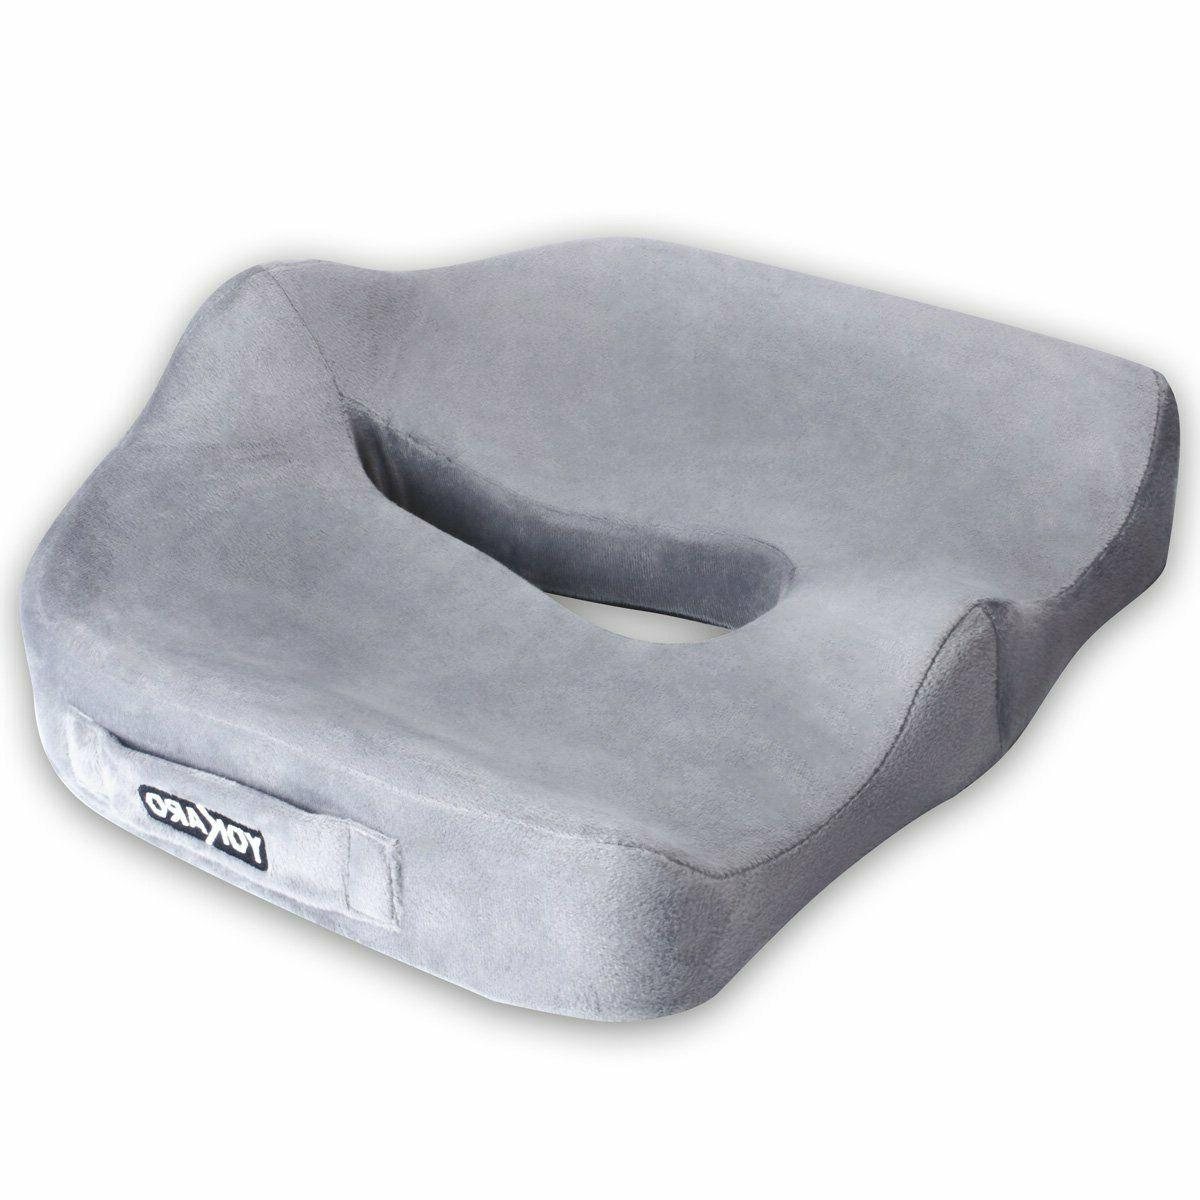 orthopedics seat cushion posture support pillow wheelchair